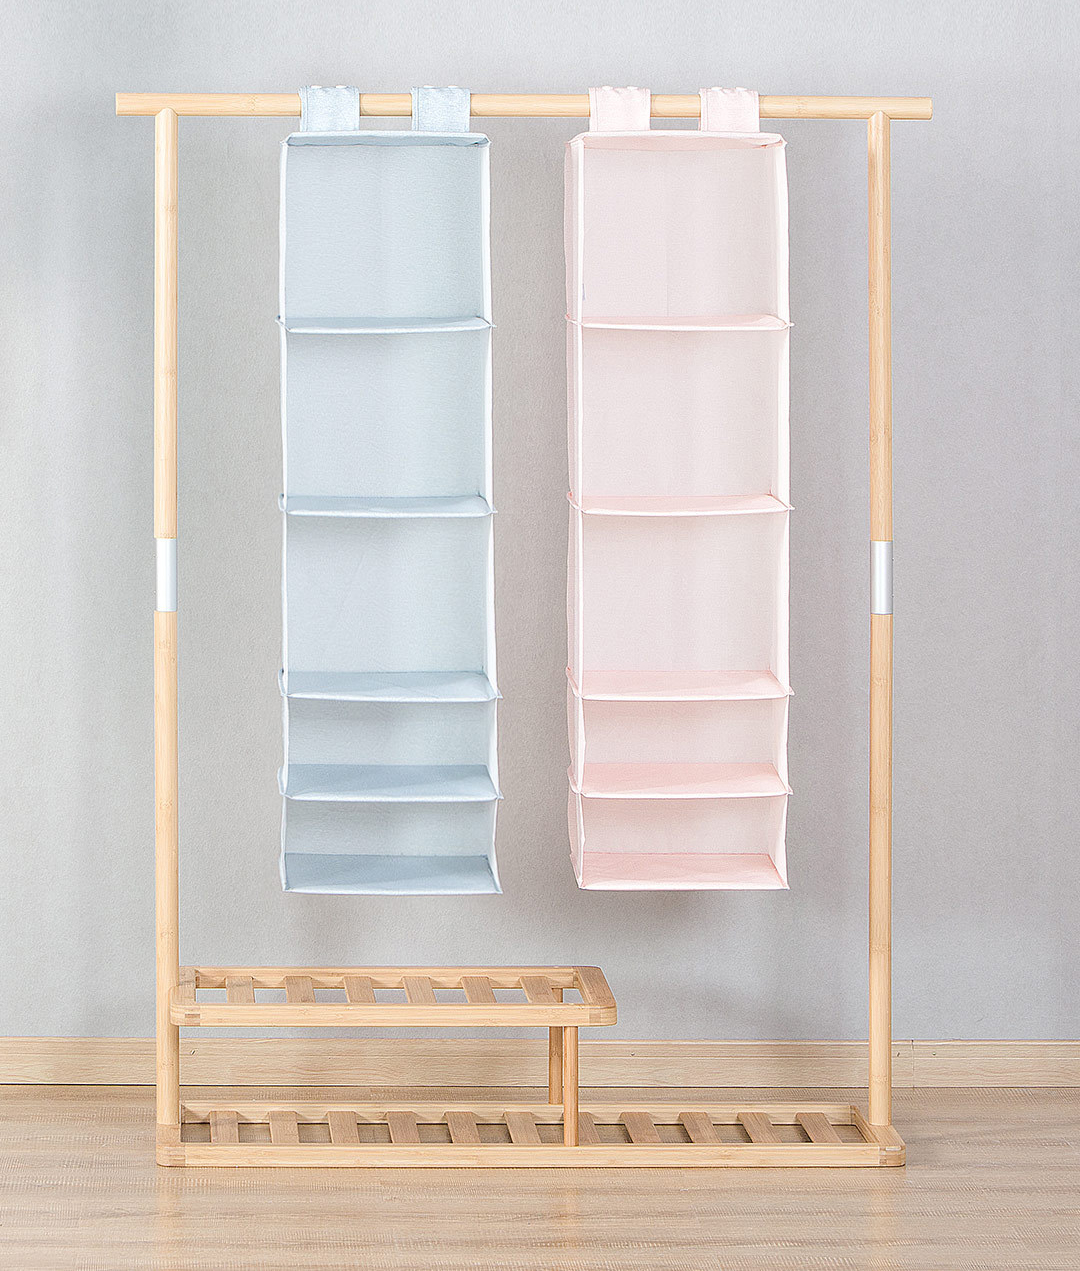 Nature Household 5 Compartment Hanging Fabric Storage Organizer Keeps Your Things Organised Two Colors